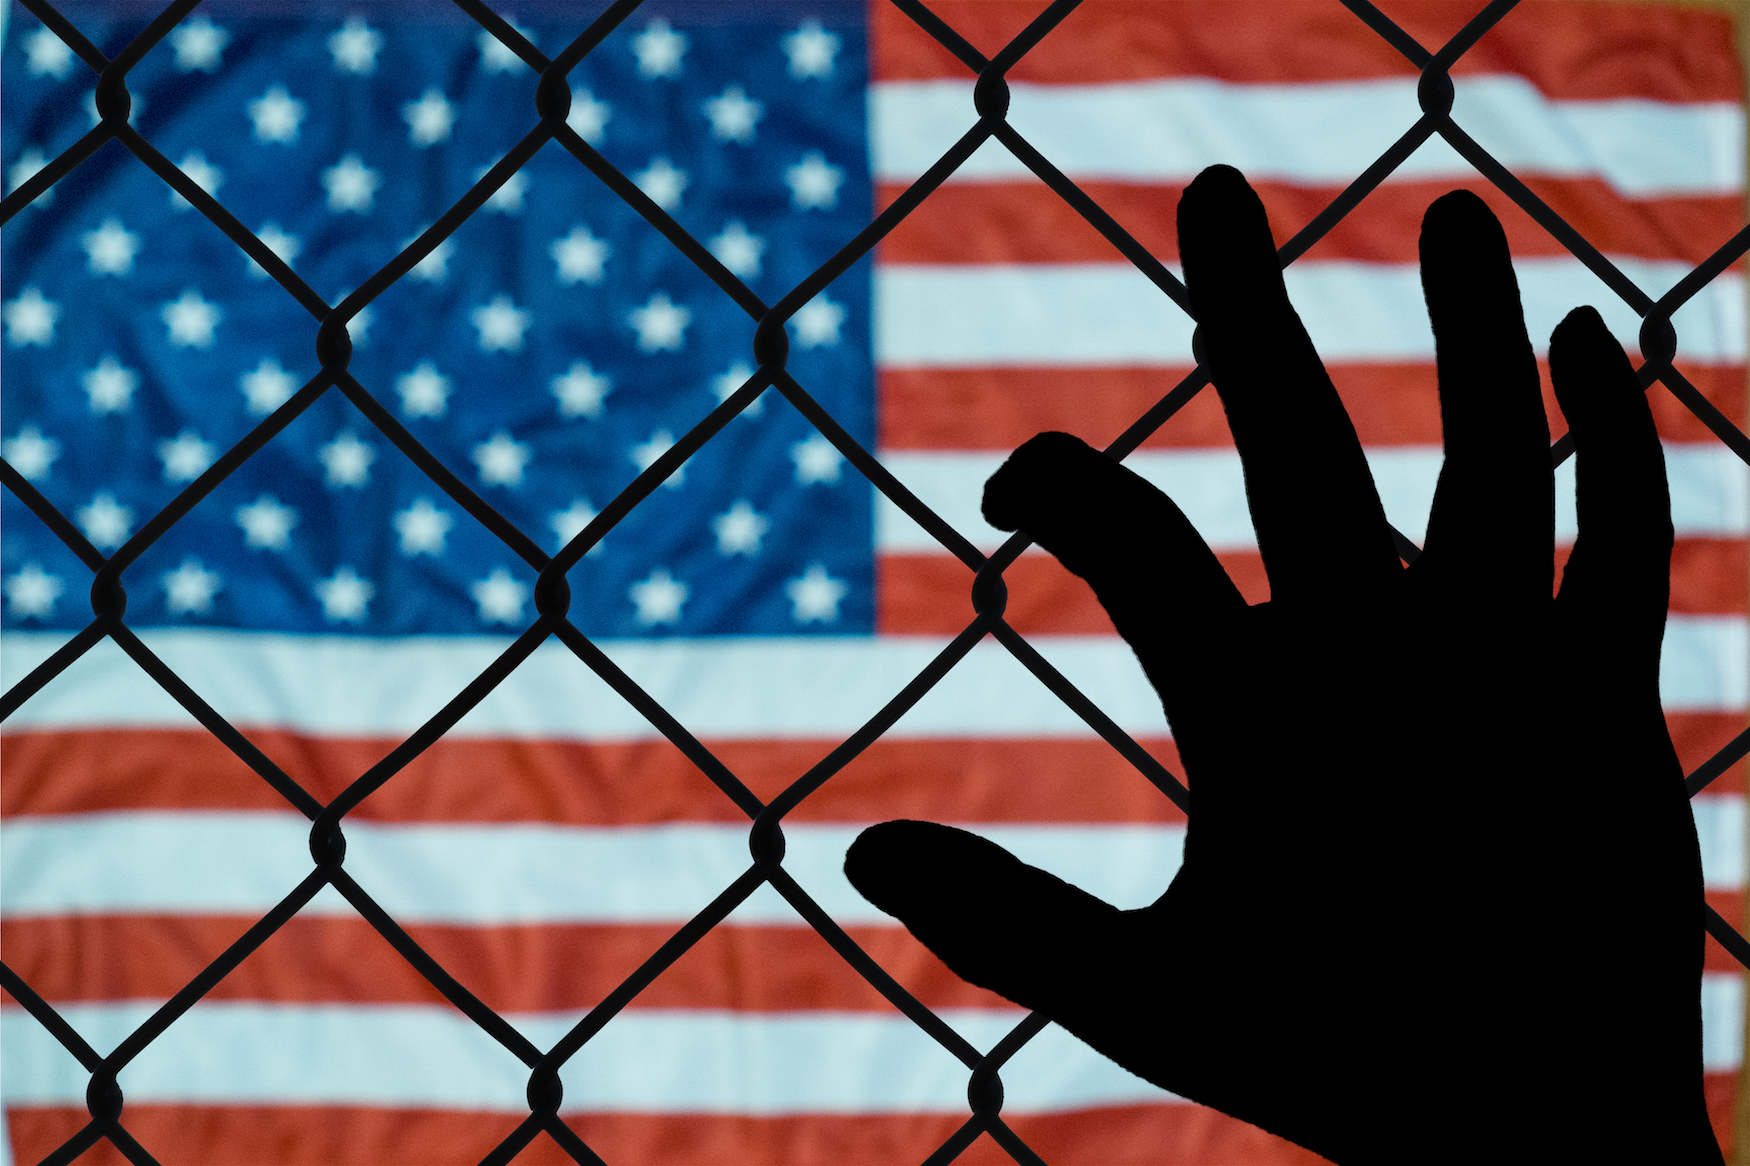 A new study has found that the deportation and forced separation of immigrants has negative effects that can impact entire communities.